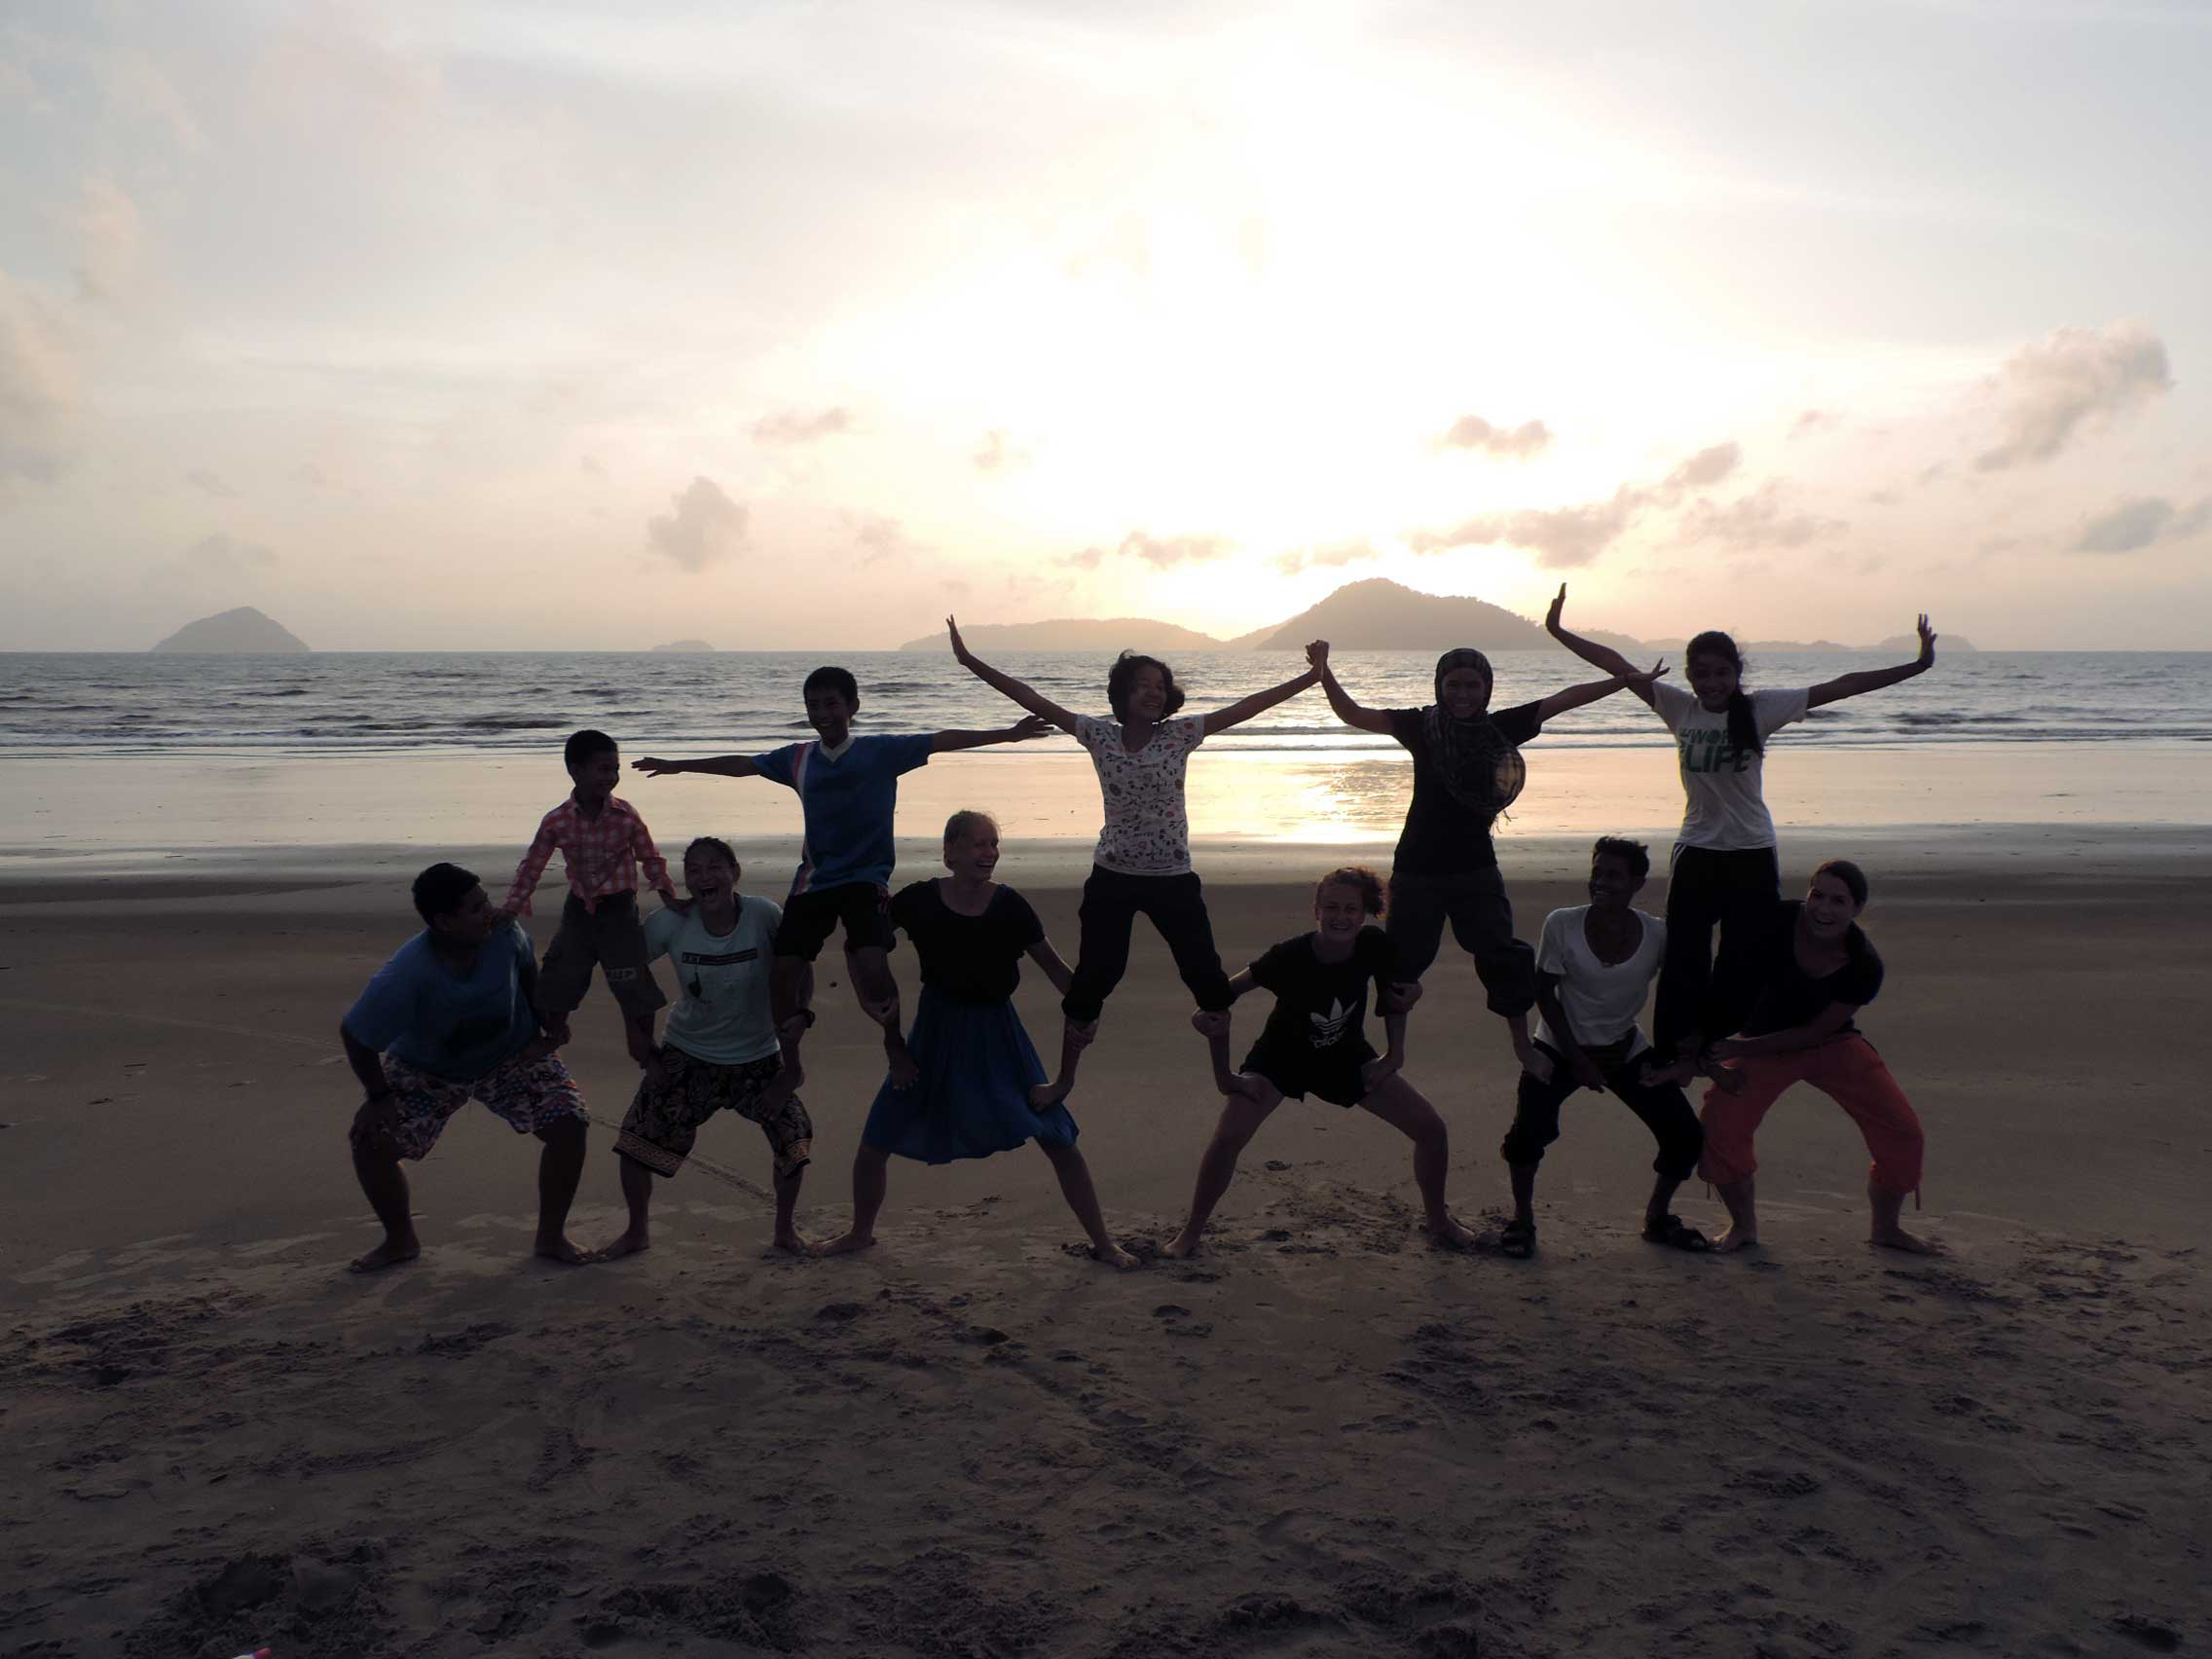 Gymnastics on the beach with homestay hosts